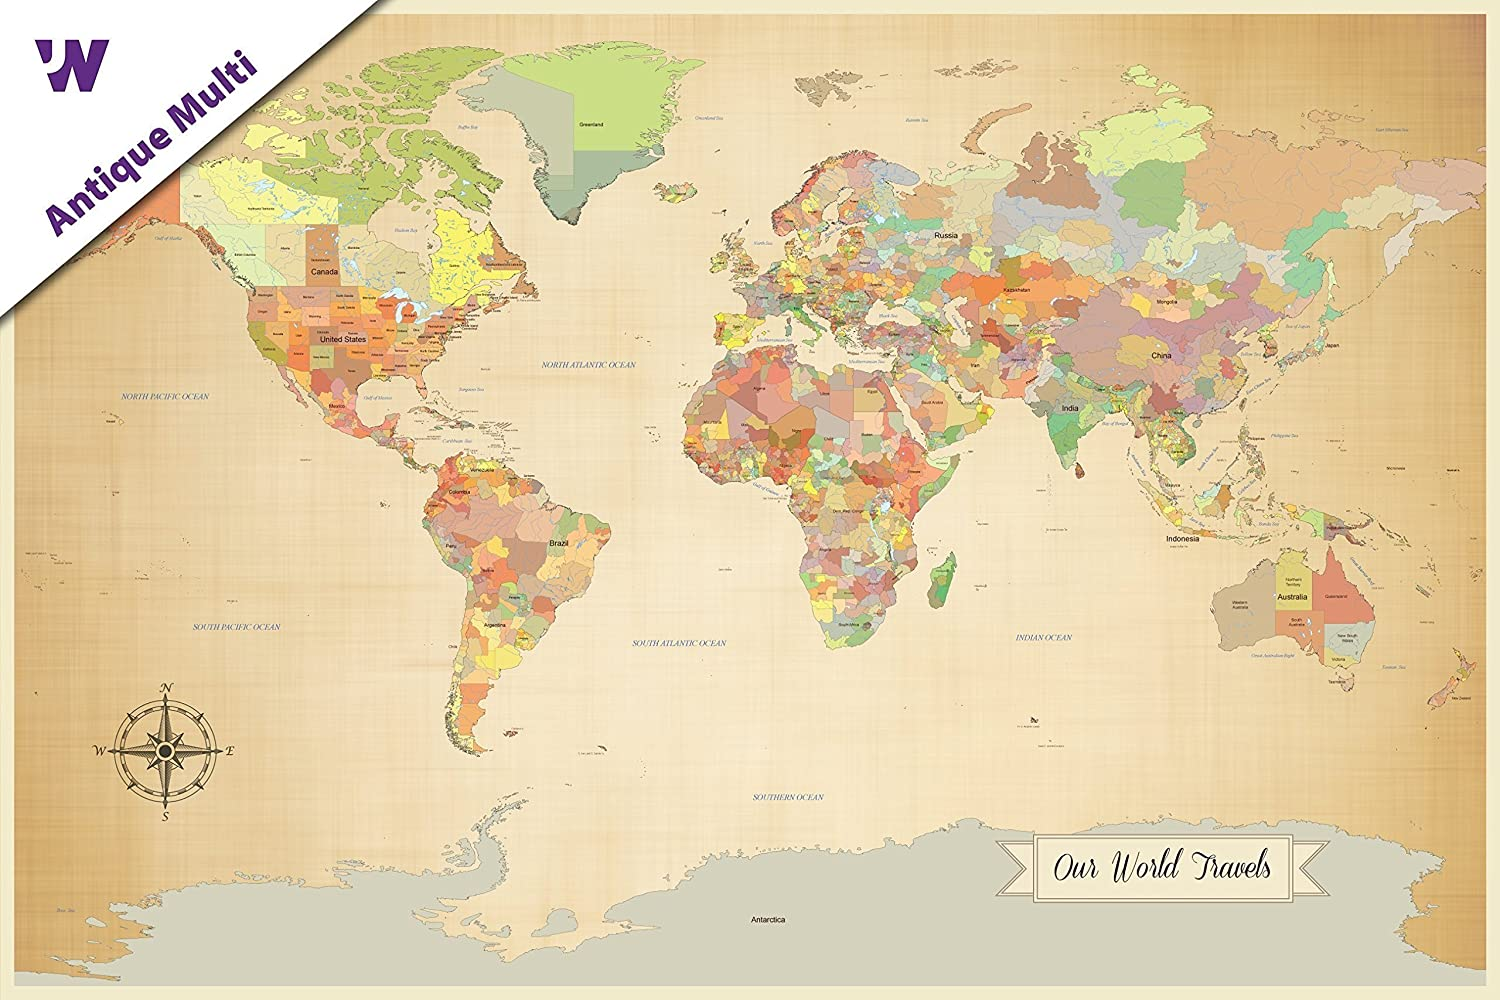 Amazon sale push pin world map world map with pins paper amazon sale push pin world map world map with pins paper anniversary world travel map with pins 24 x 36 multiple color options ready to ship gumiabroncs Image collections